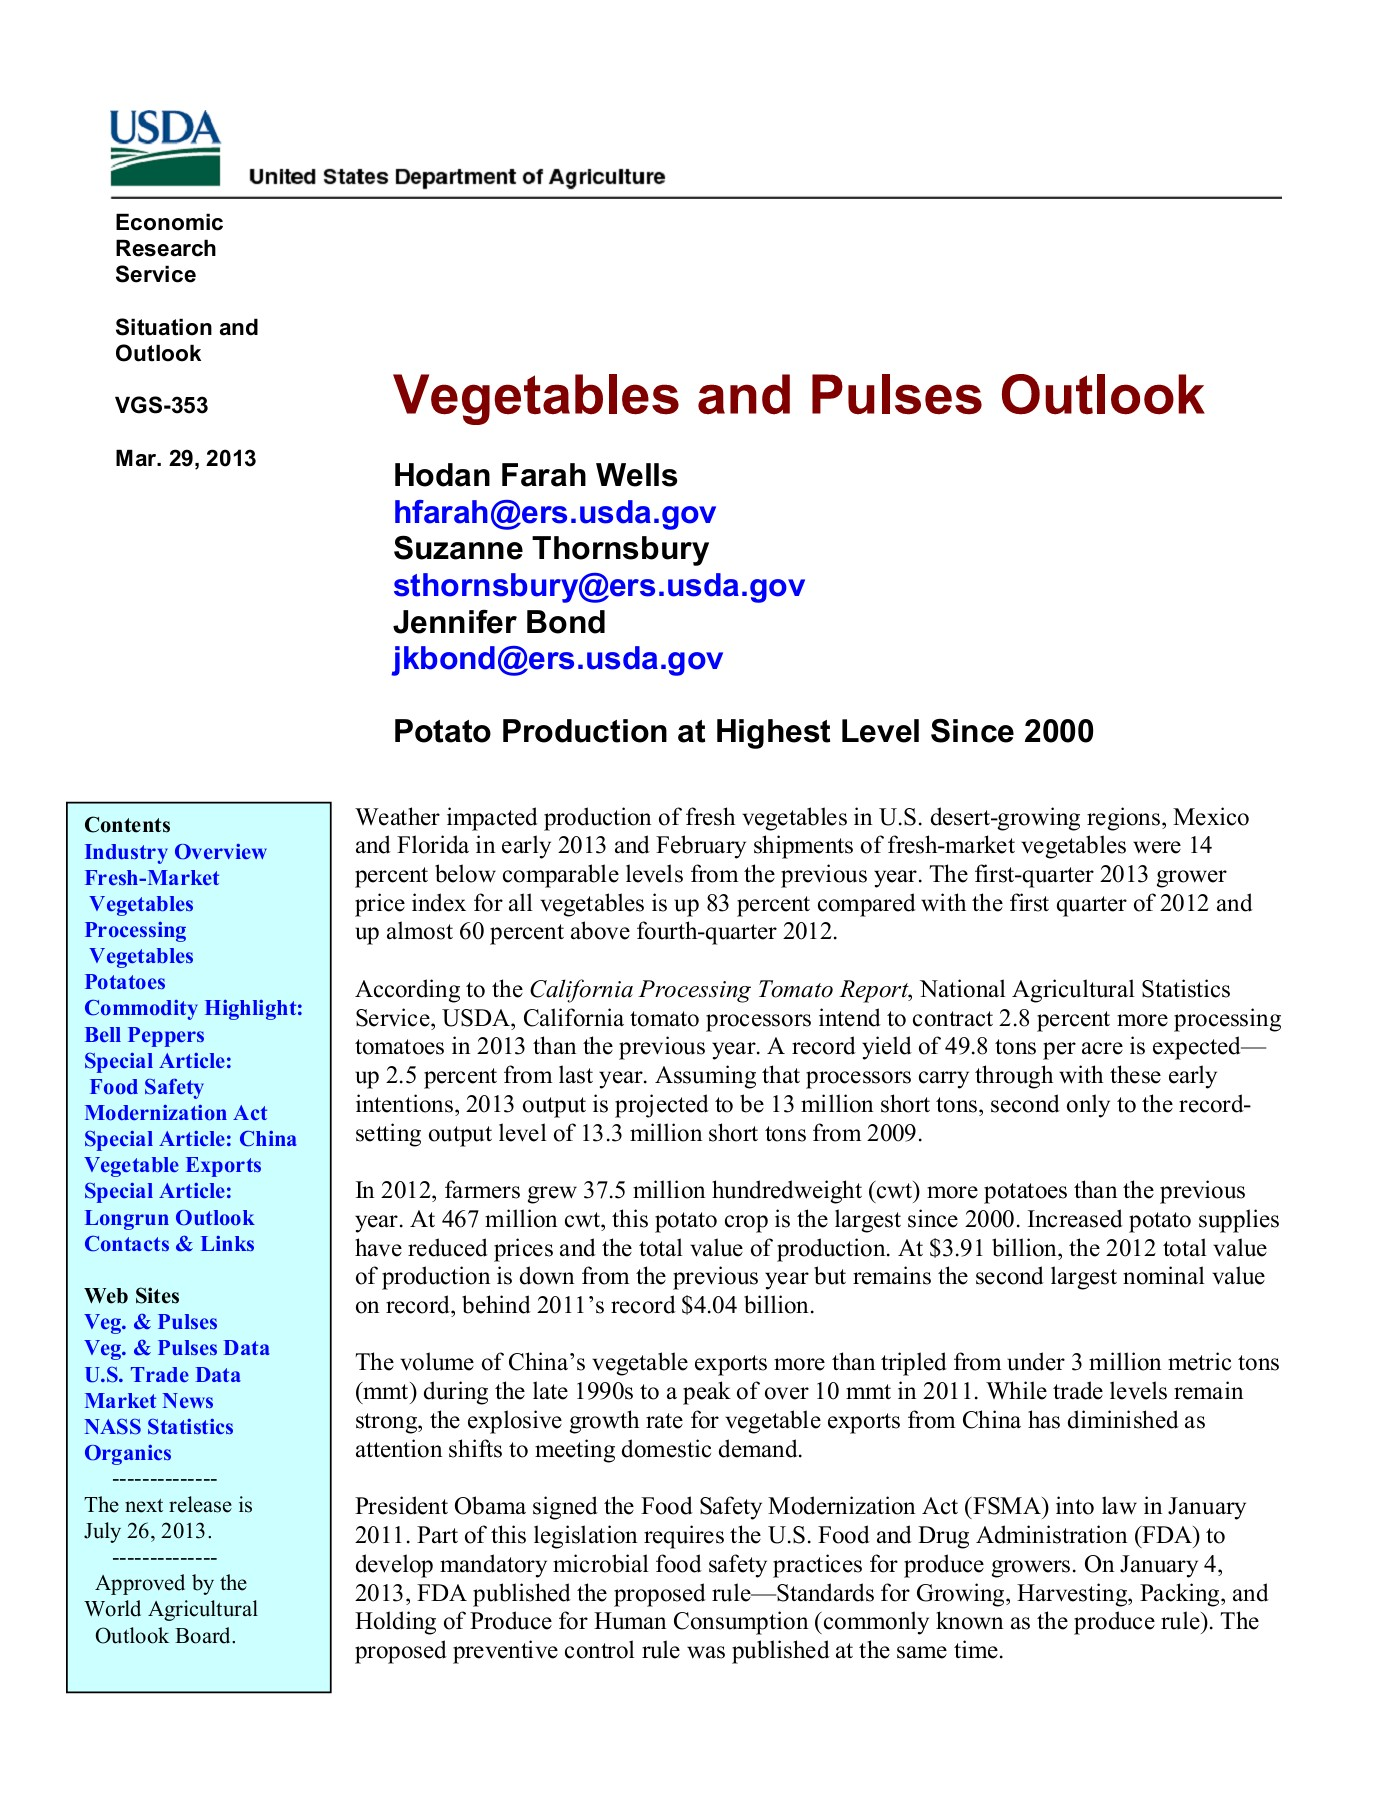 Vegetables and Pulses Outlook (VGS-353) Pages 1 - 45 - Text